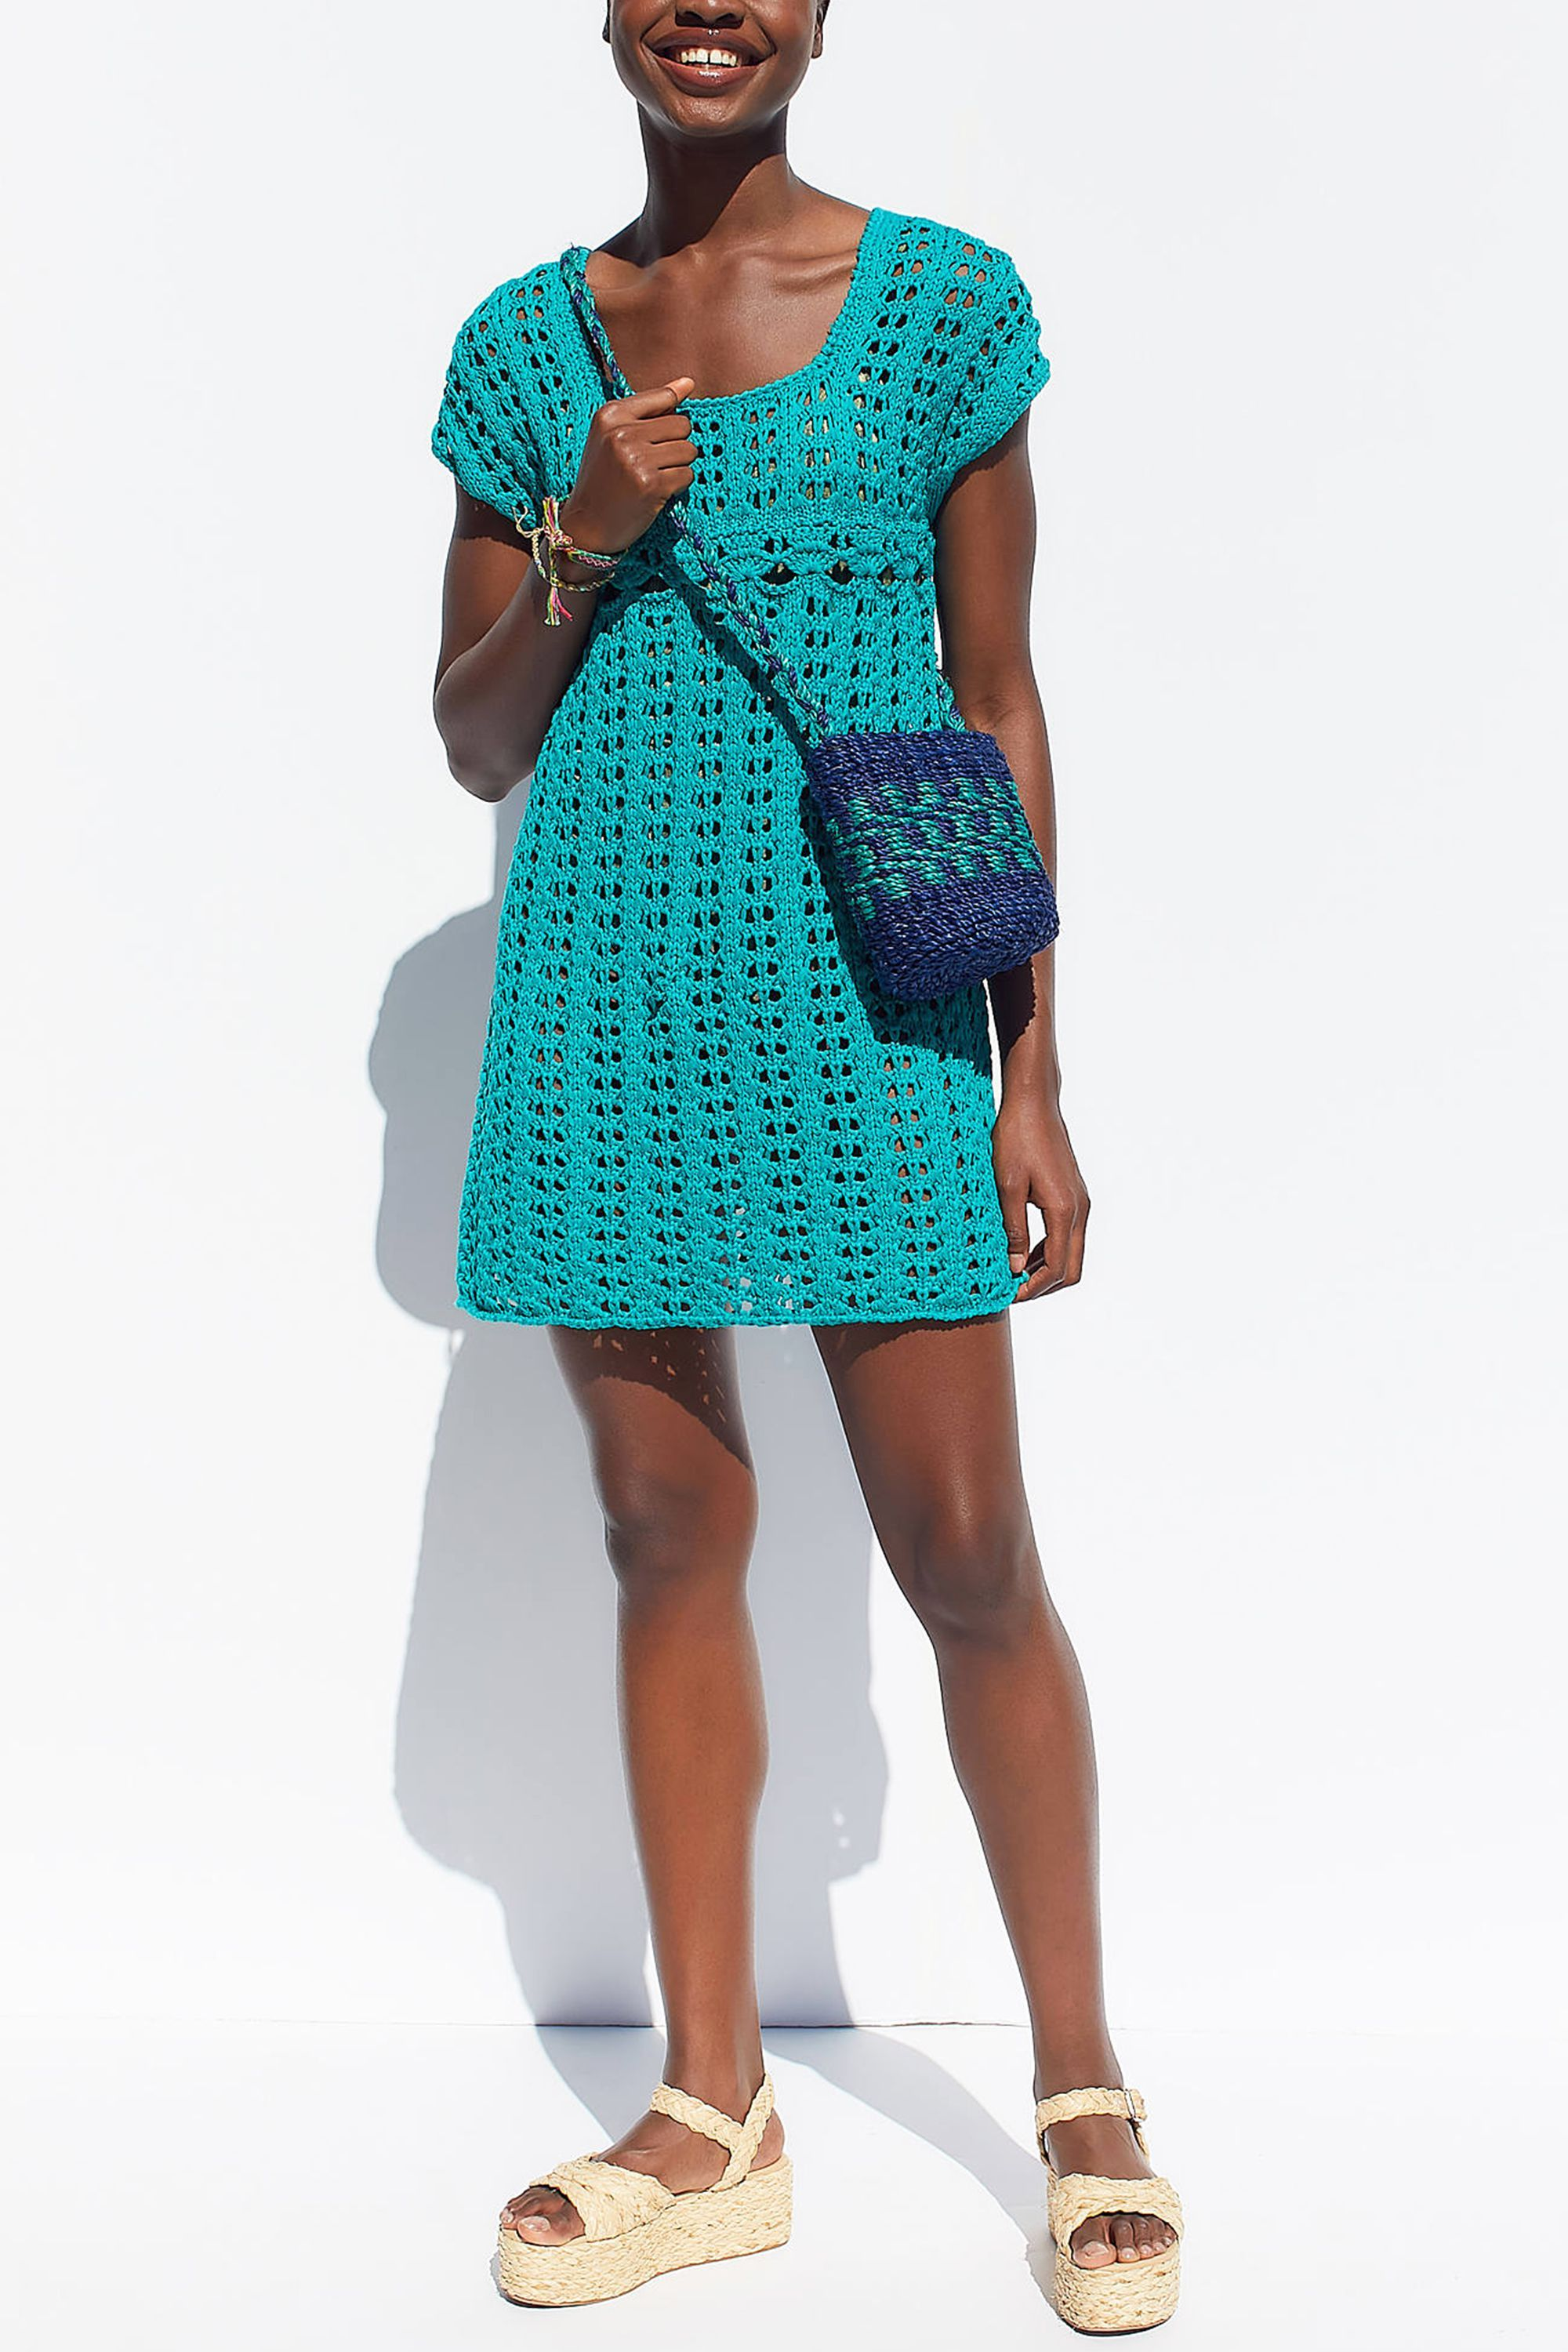 Peek-A-Boo Crochet Mini Dress Urban Outfitters urbanoutfitters.com $79.00 SHOP NOW A crochet mini dress is a super cute option for showing off your bathing suit, while not showing off too much skin. We love how this is styled with textured accessories, like a fun basket bag and woven wedges.